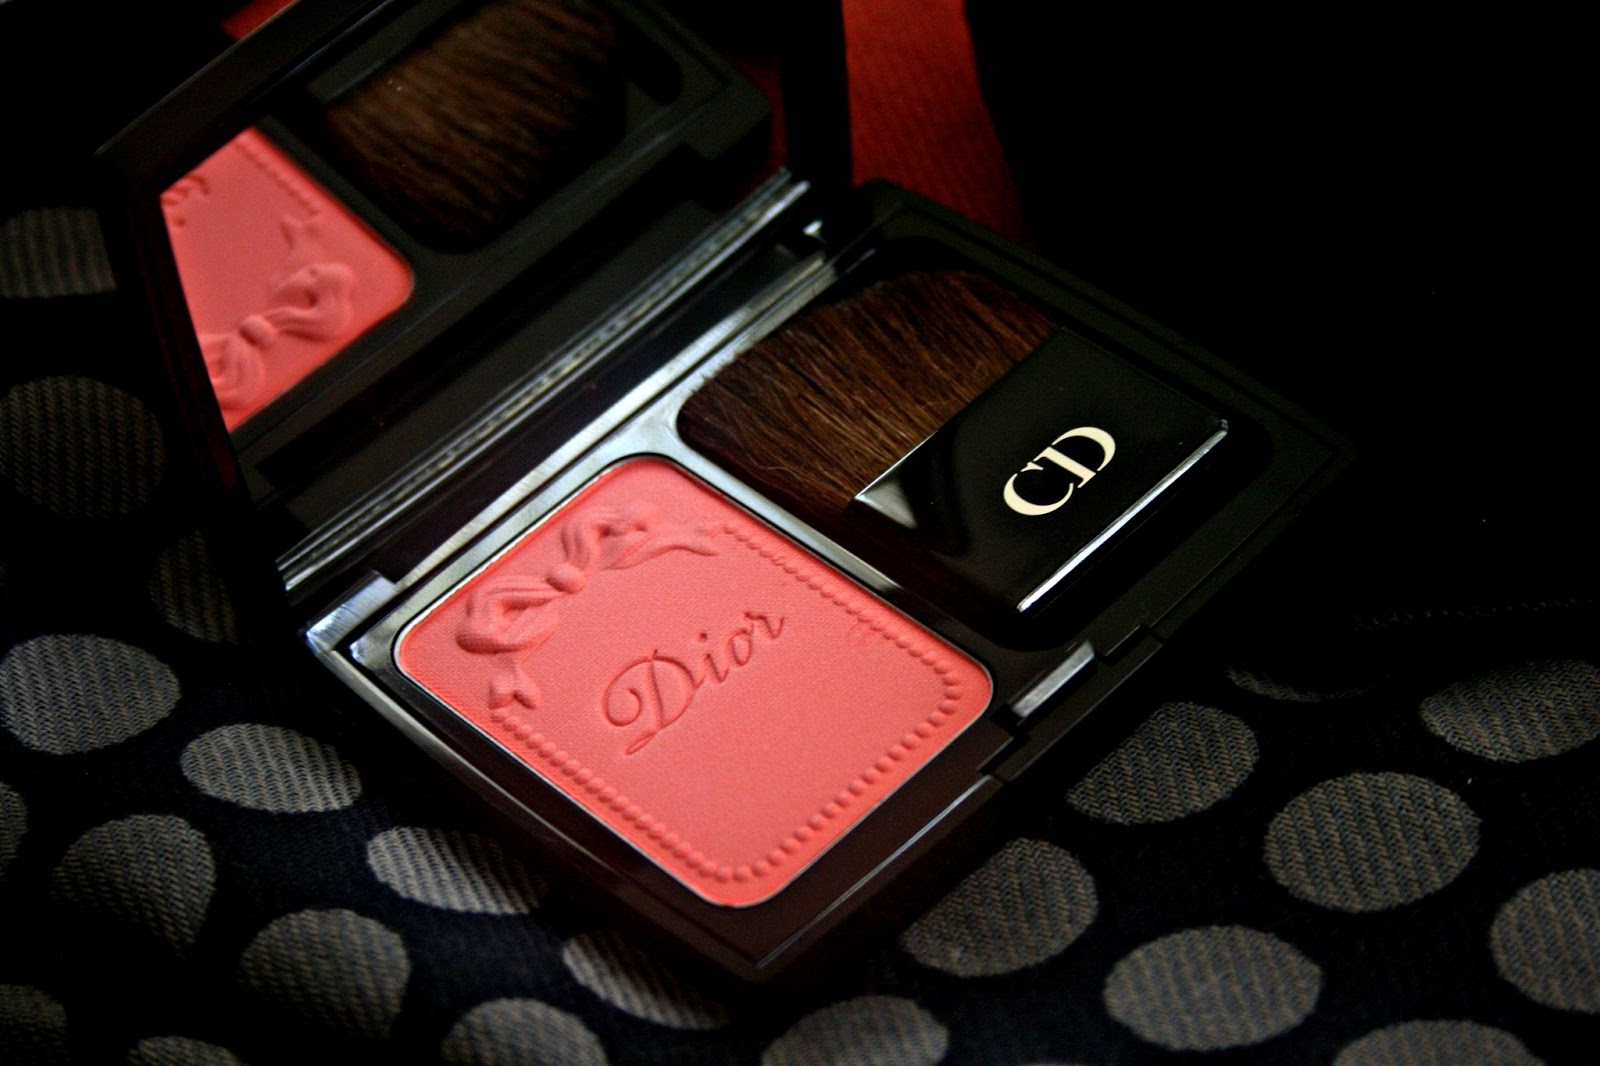 Dior Blush in Corail Bagatelle